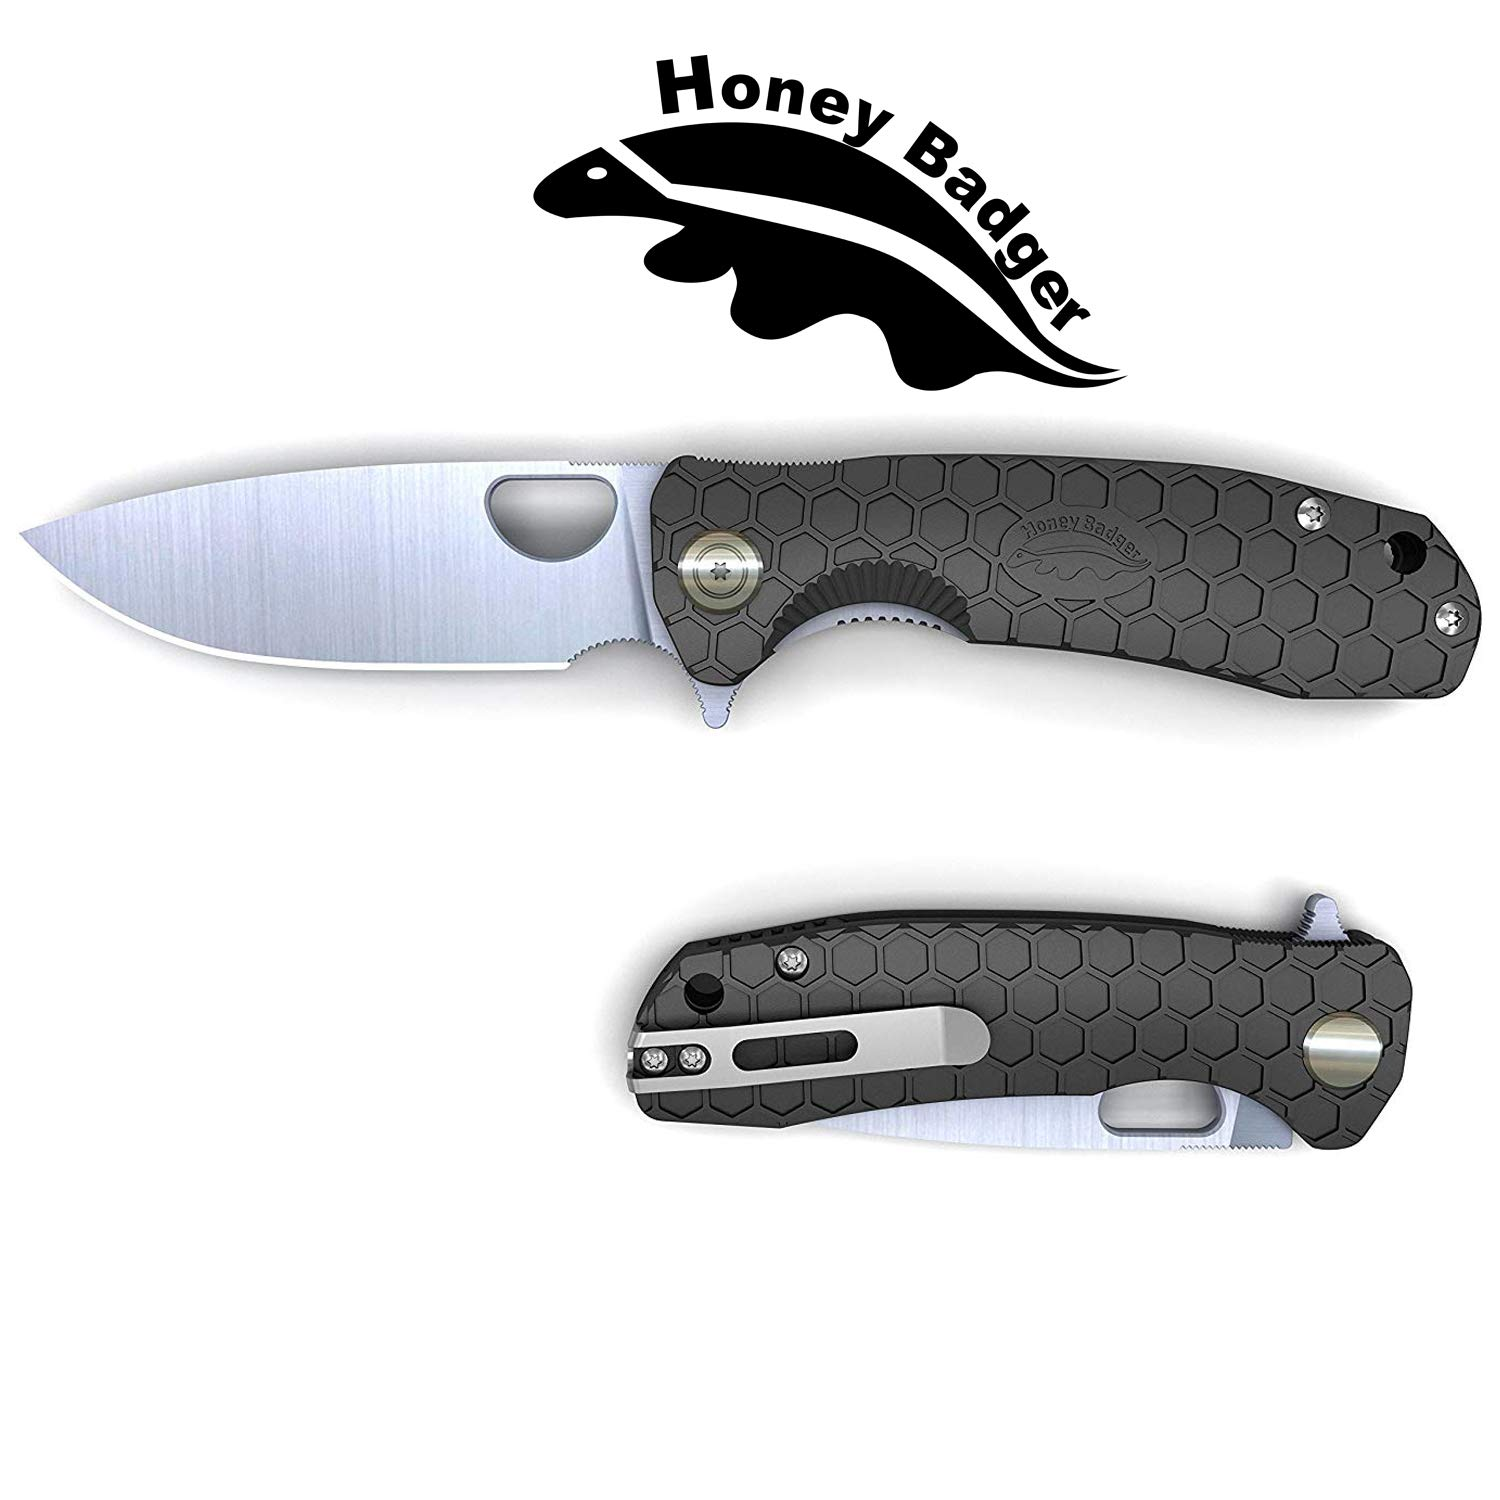 Western Active Honey Badger Pocket Knife Flipper EDC Knife for Hunting,  Fishing, Tactical  Deep Pocket Carry Clip Gift Box with Torx Wrench